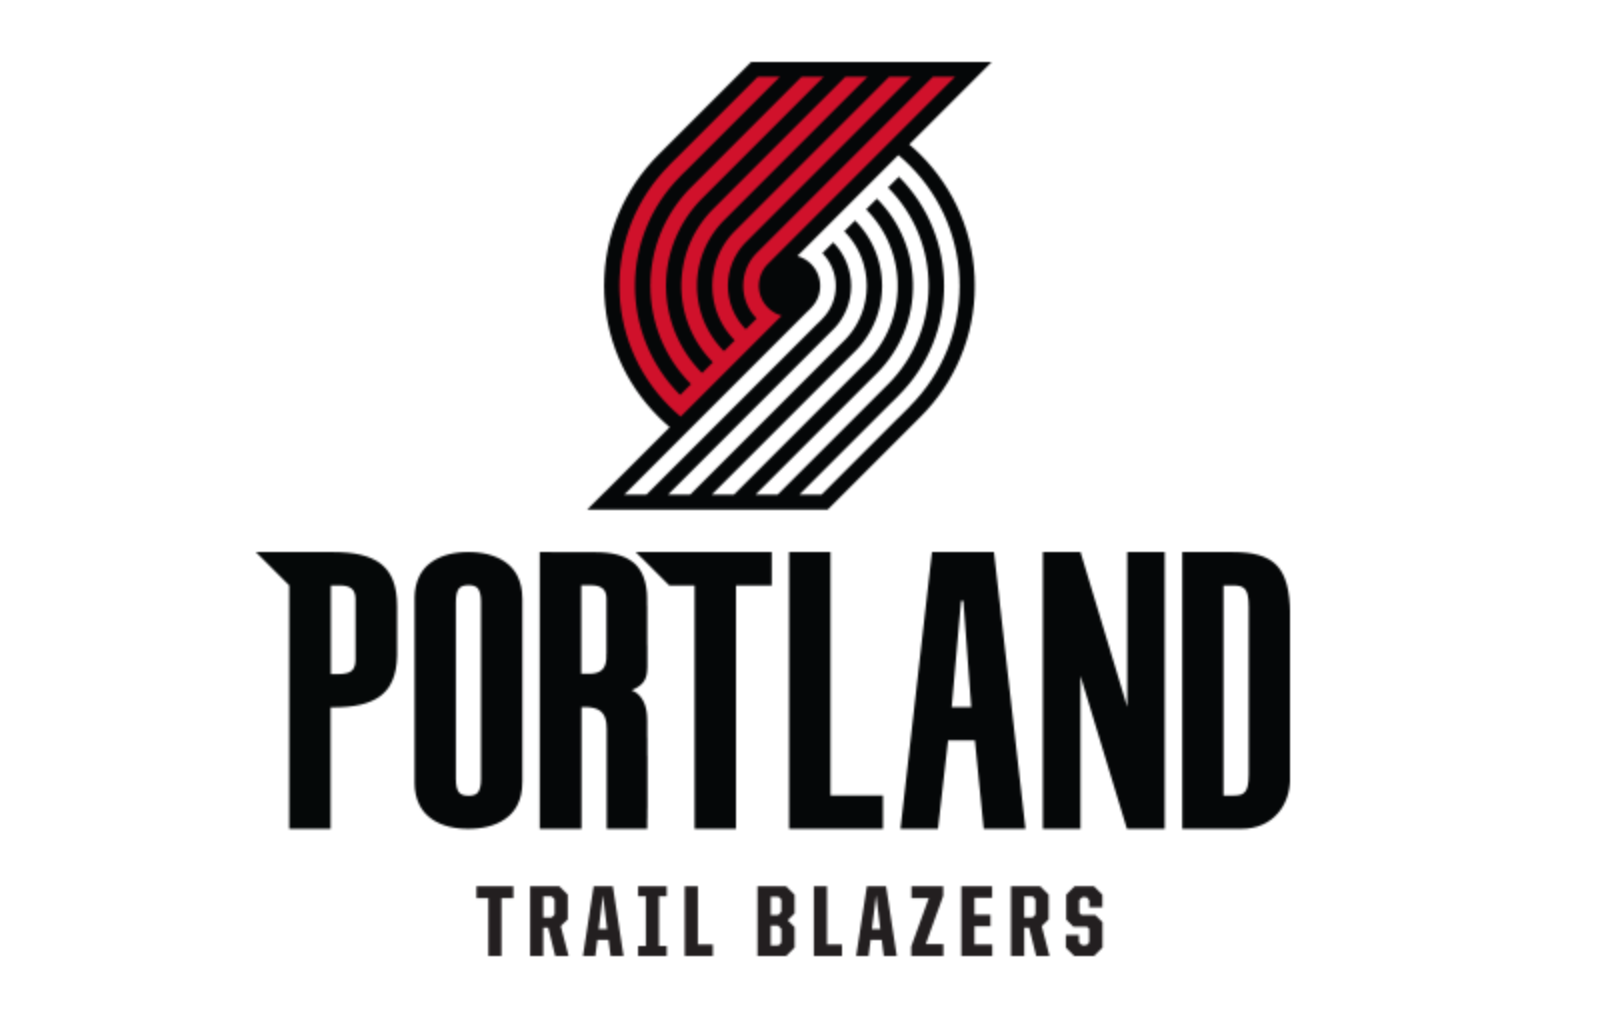 Here is the new Portland Trail Blazers logo - oregonlive.com